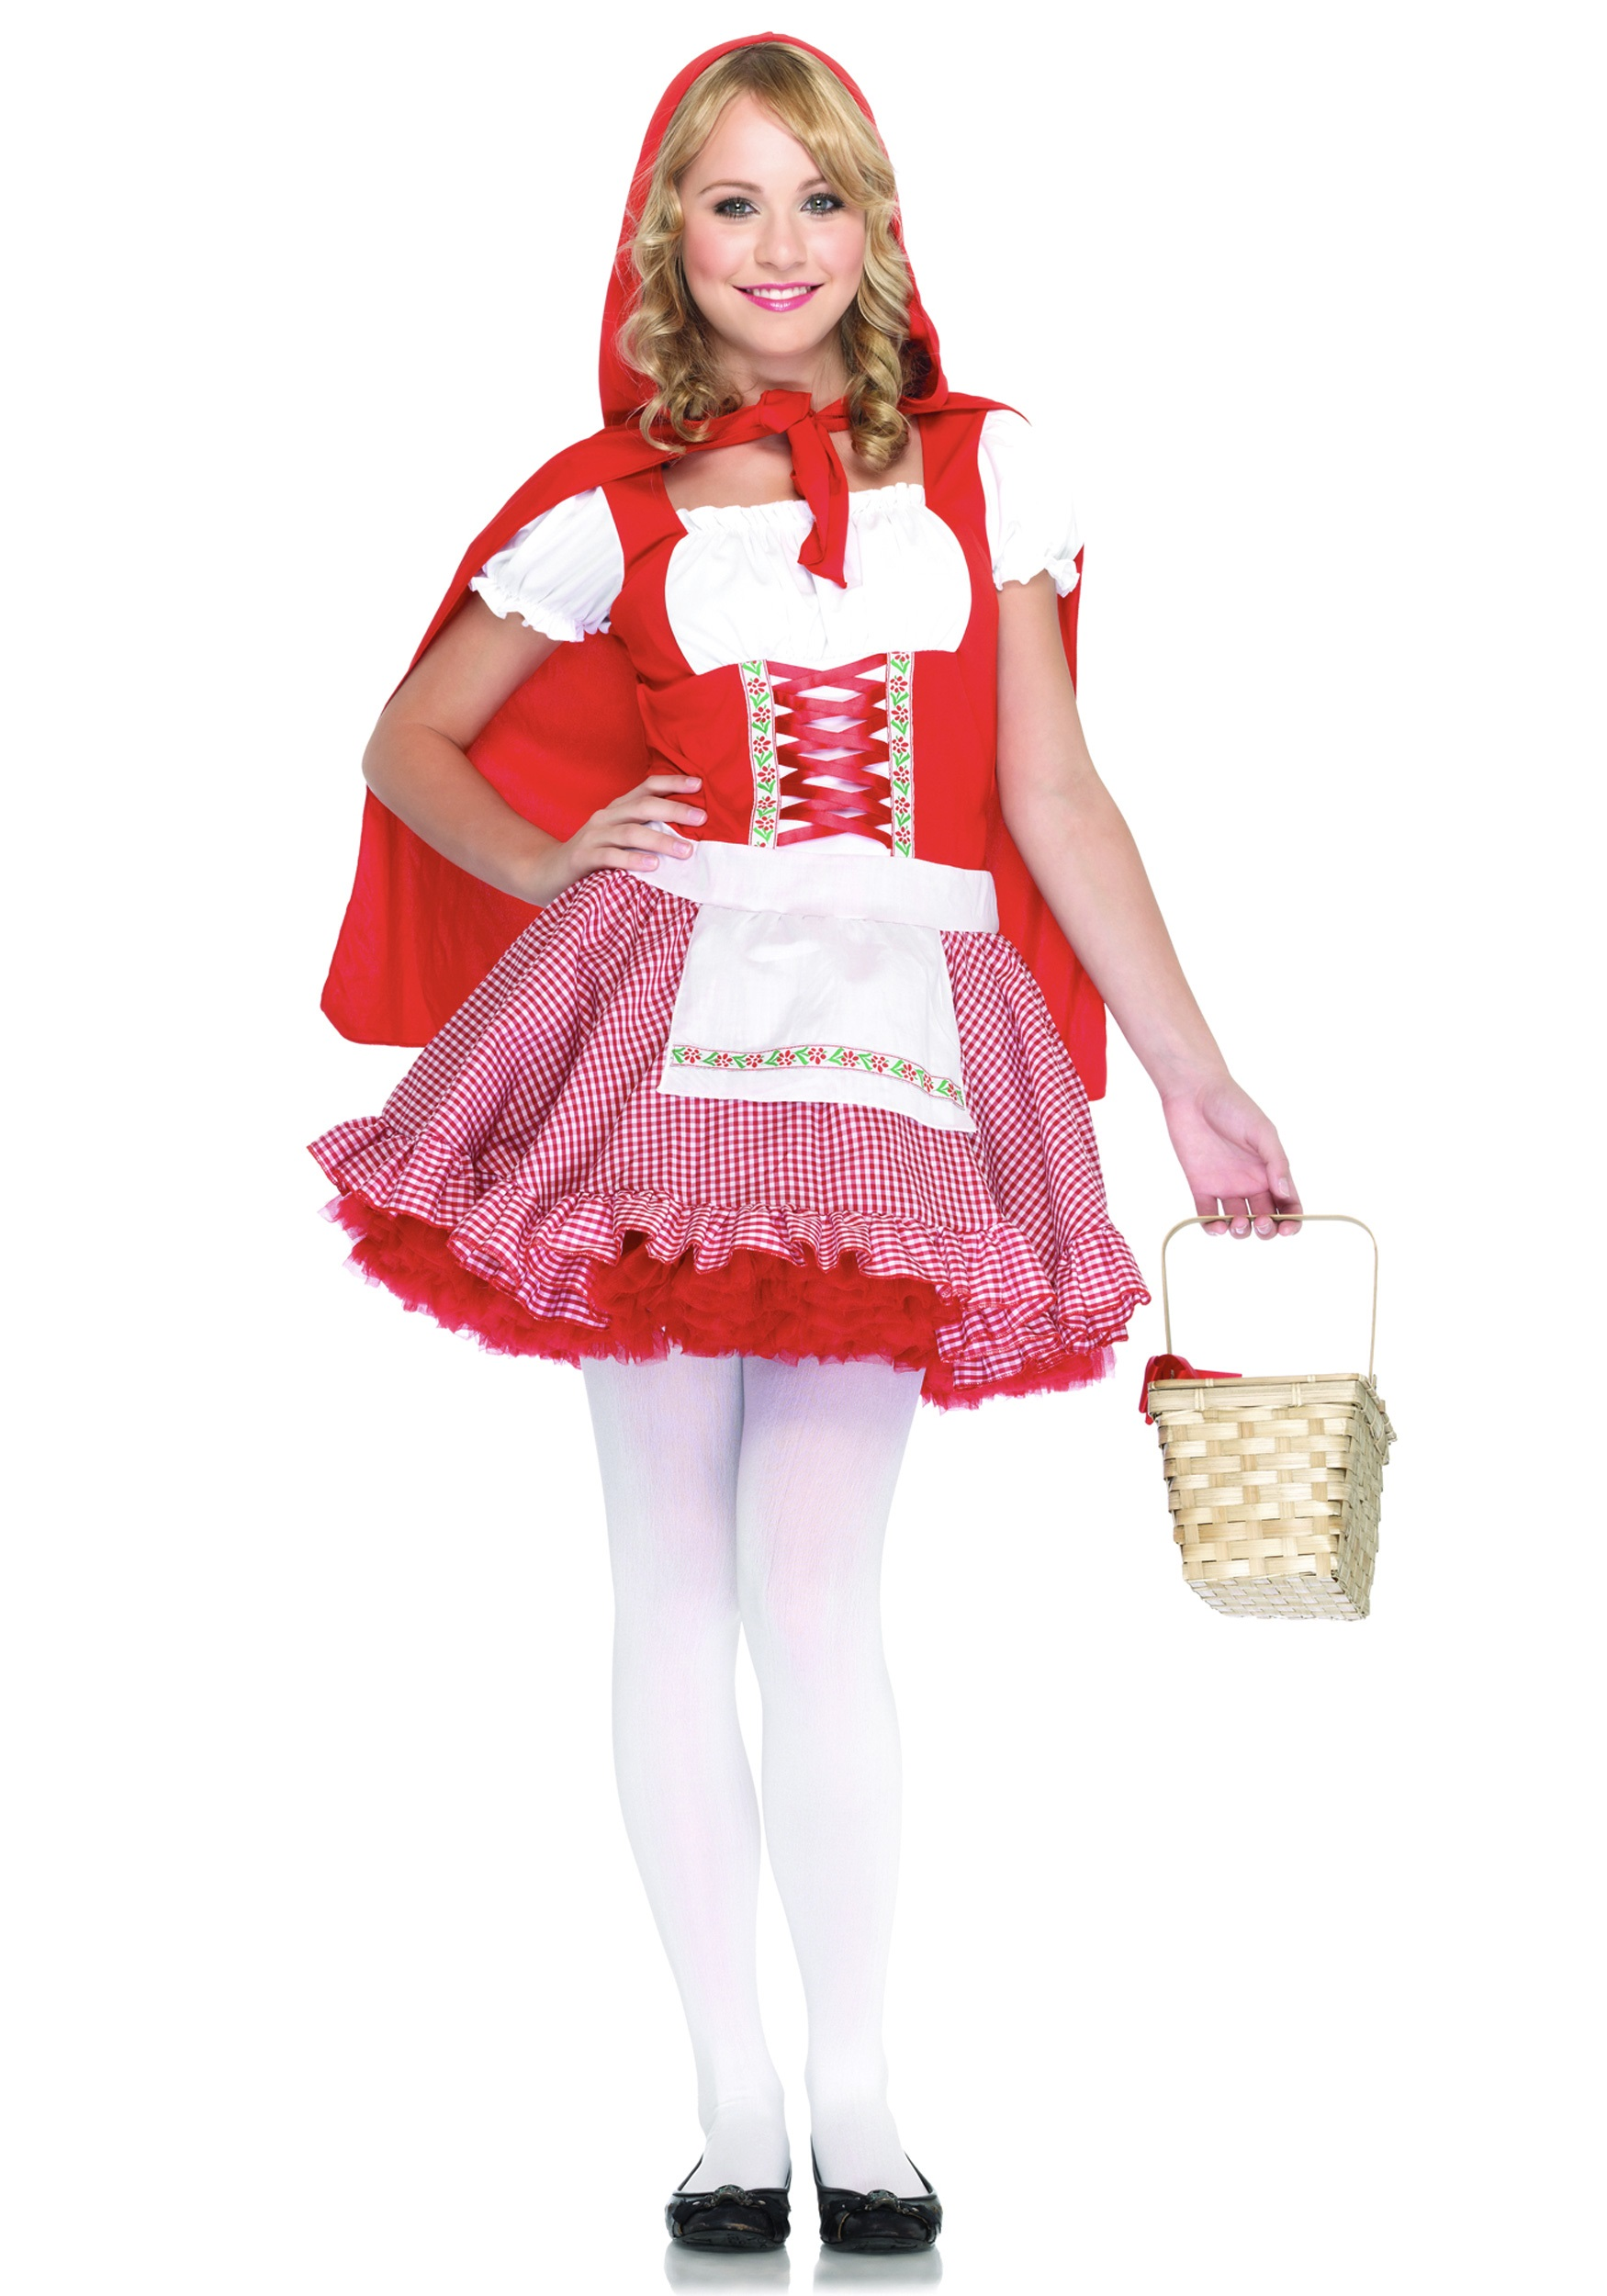 Teen Little Red Riding Hood Costume  sc 1 st  Halloween Costume & Teen Little Red Riding Hood Costume - Costumes for Teens